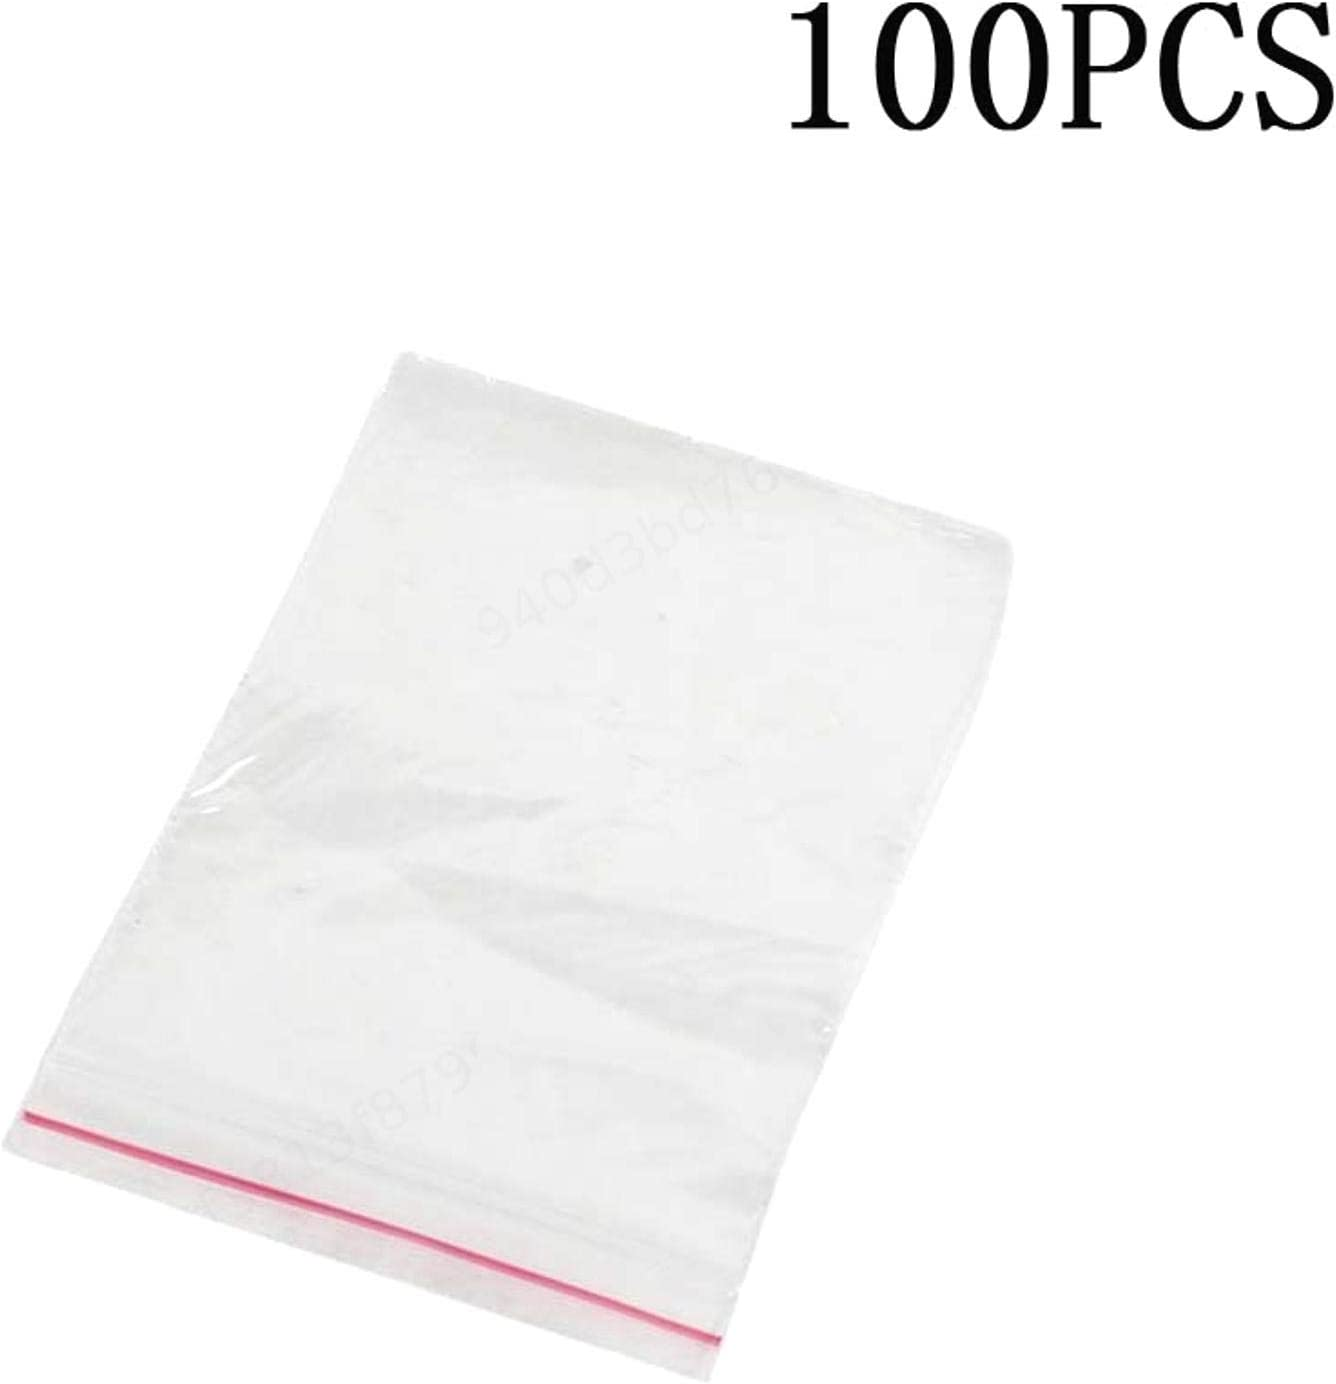 100 Pcs 9cm x 6cm en Plastique Transparent Baggy Grip Auto Joint Zip Lock Fermeture Sacs De Stockage Rescellable Autocollant Sac